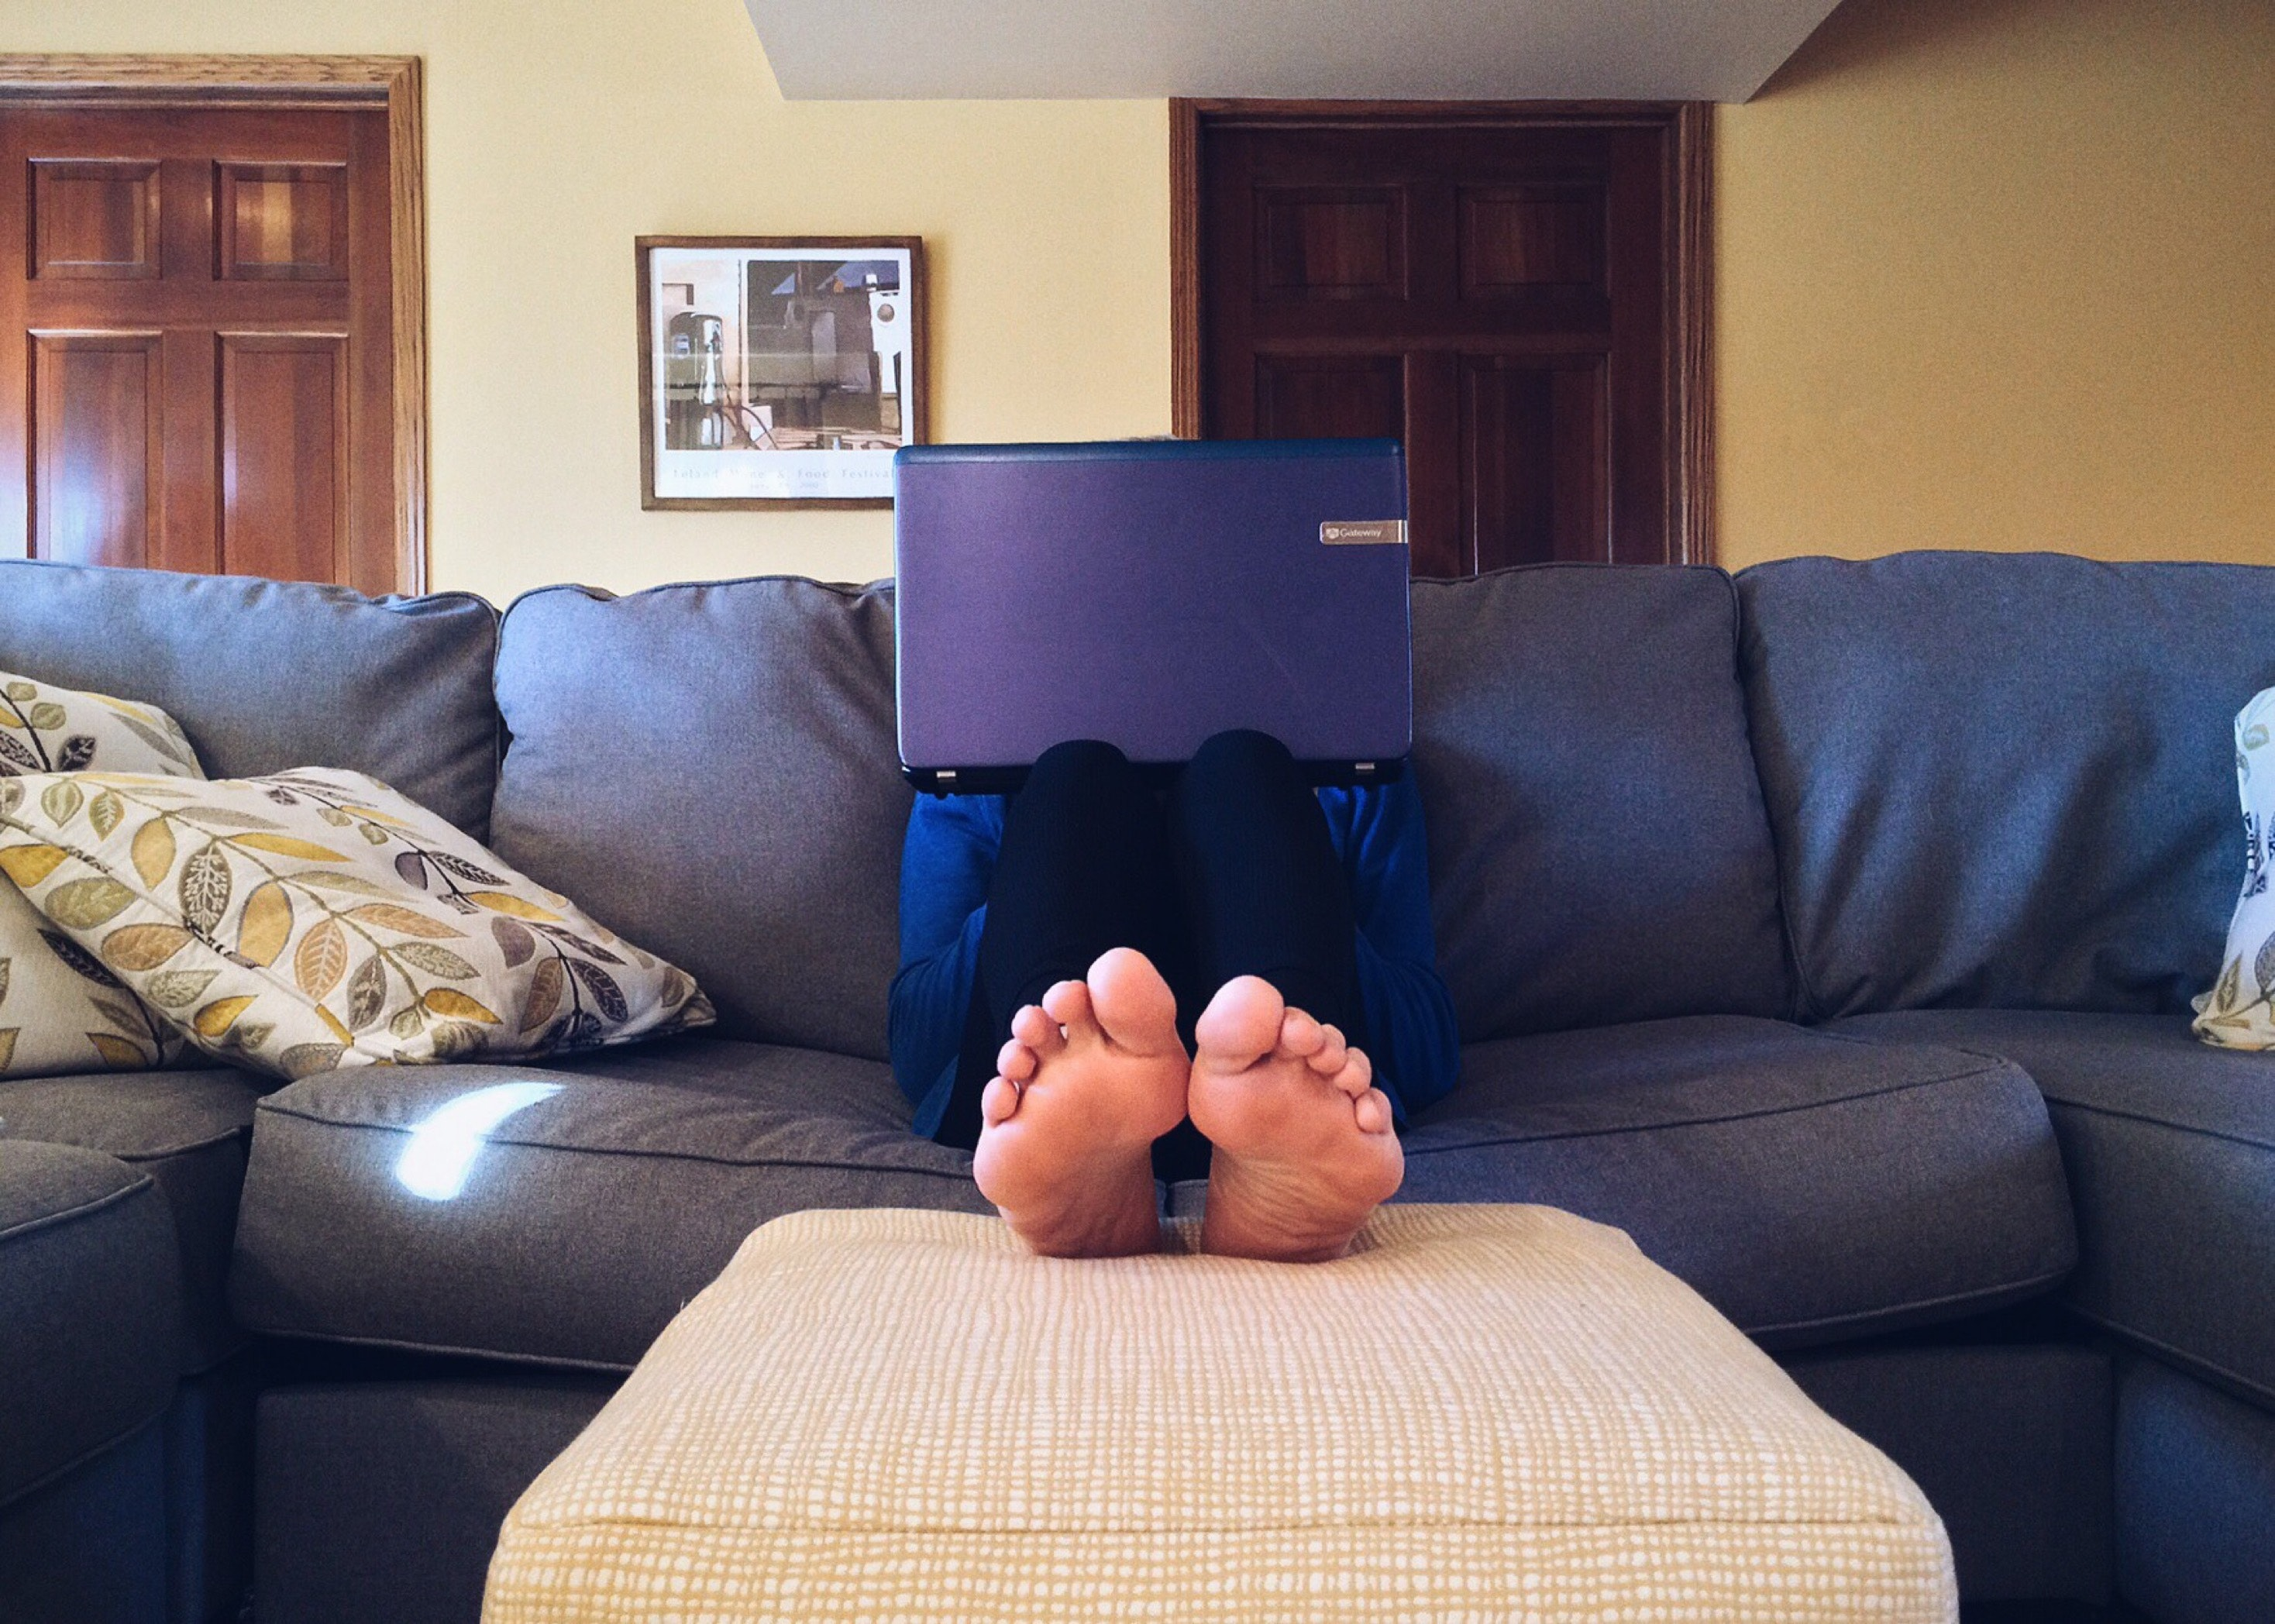 Guy with notebook on couch